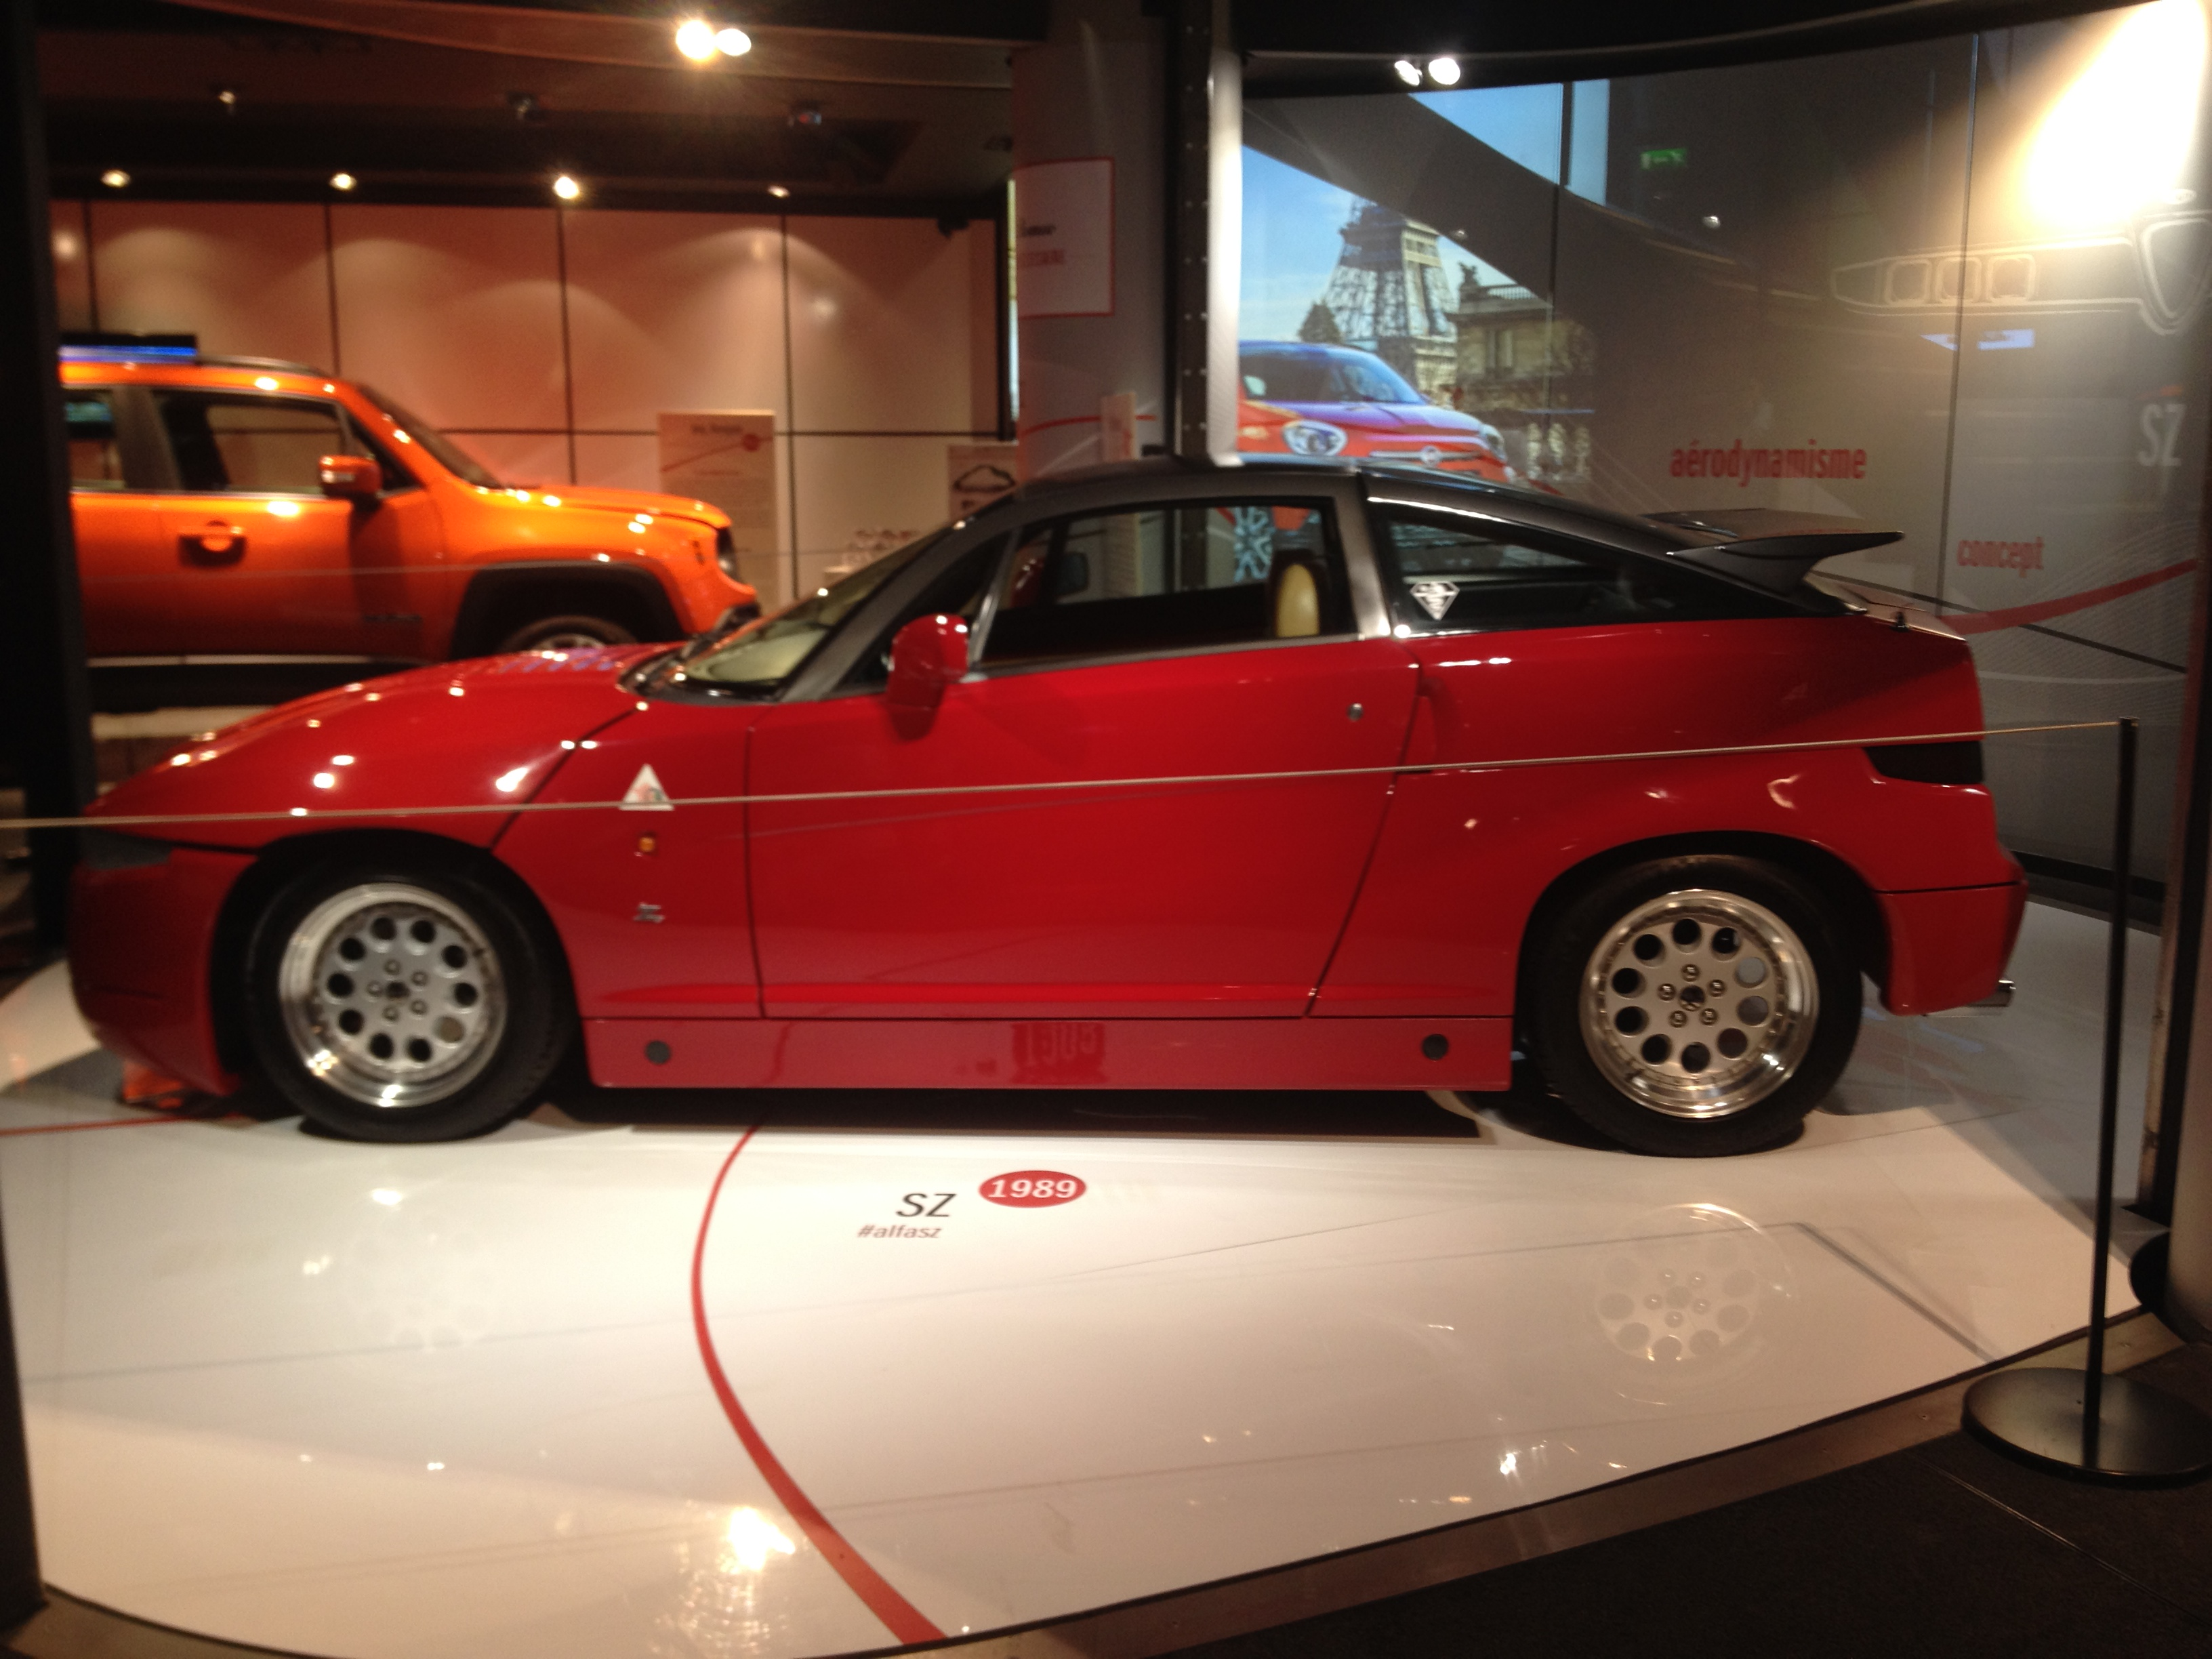 Alfa Romeo - SZ - MotorVillage - 2015 - Photographie Laurent H